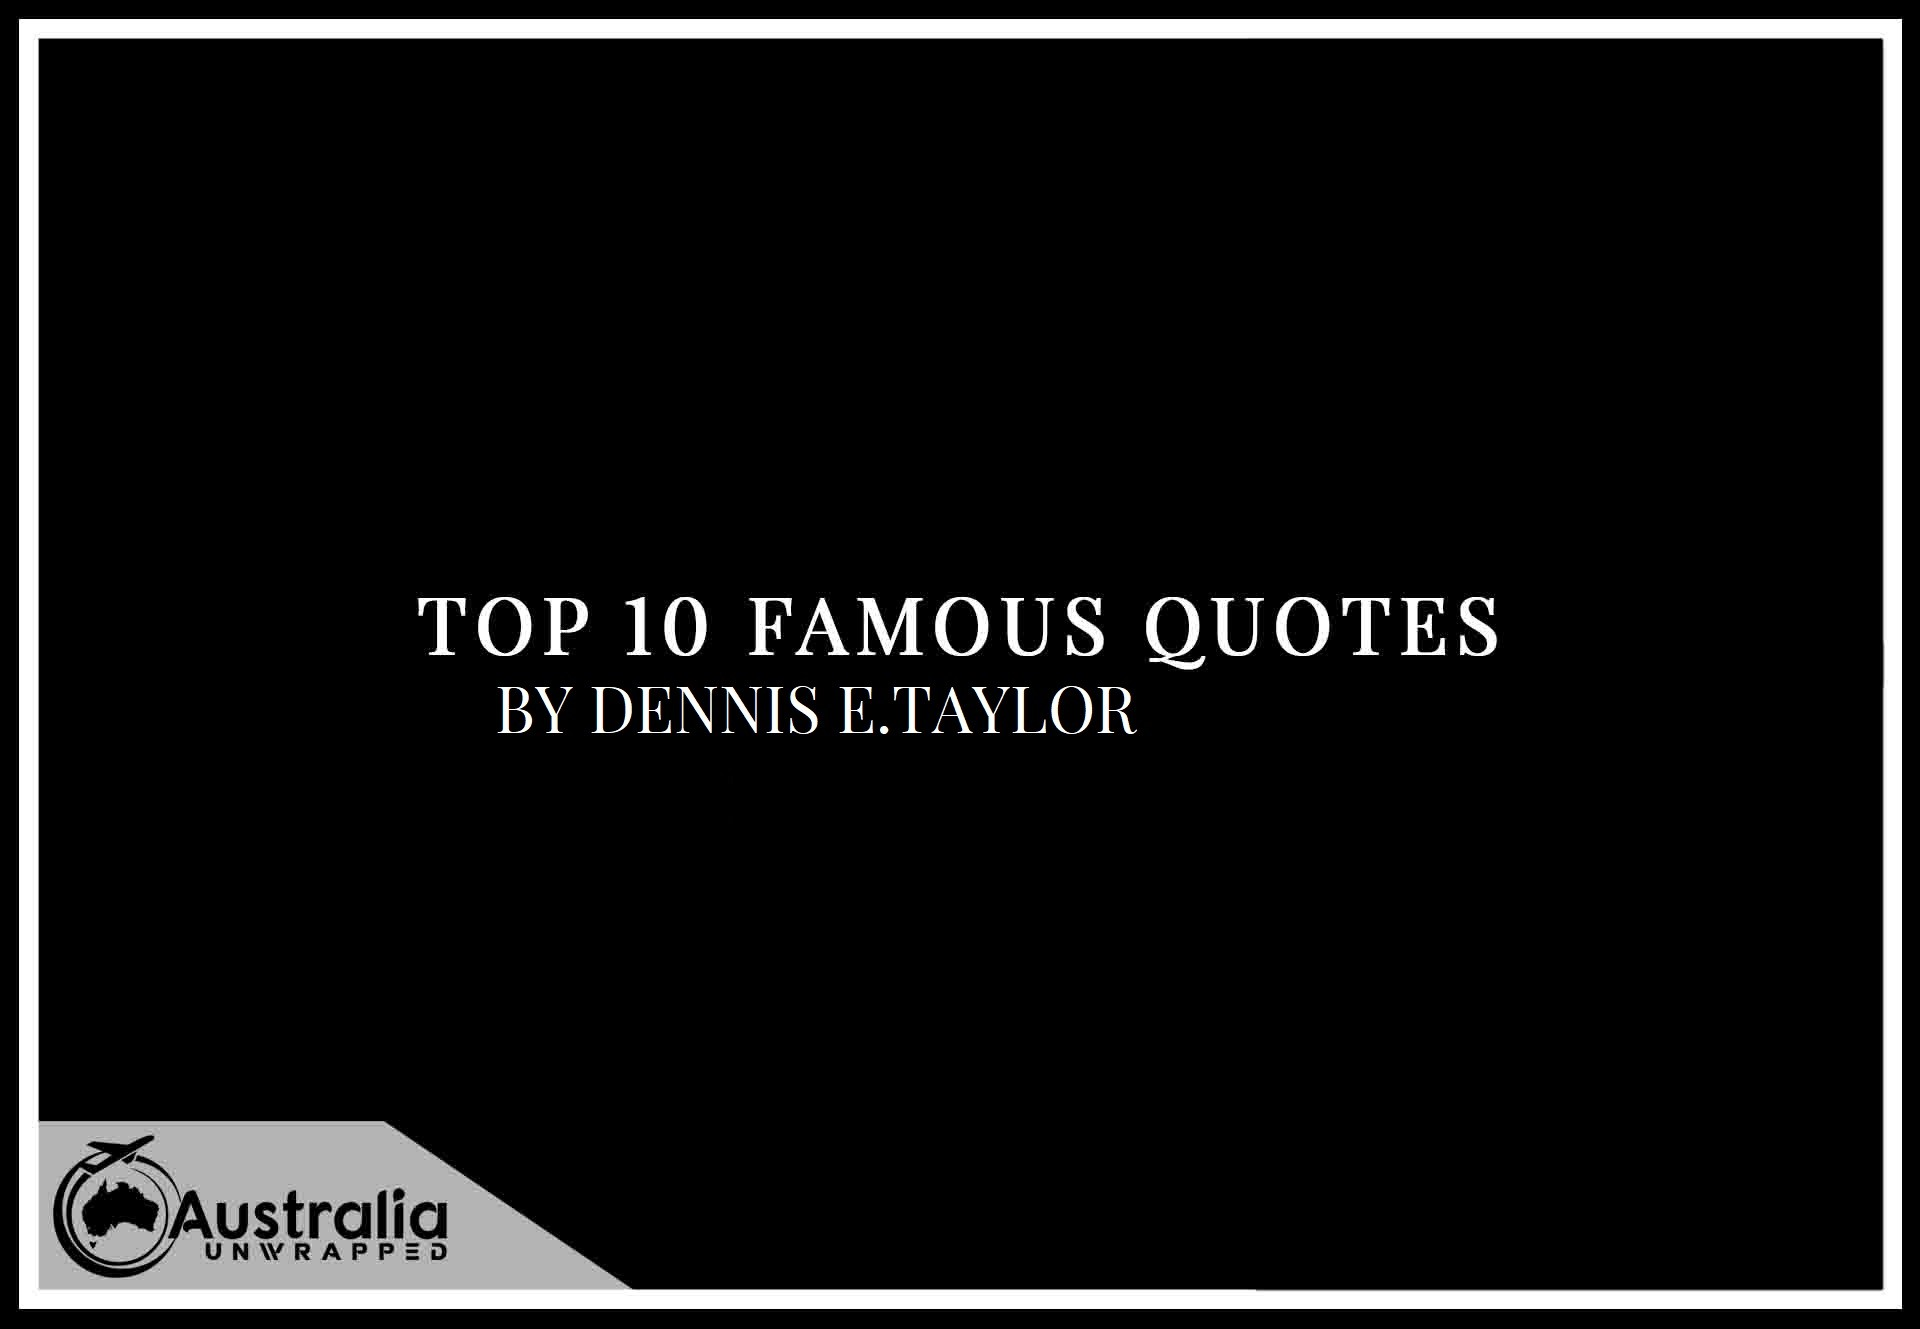 Top 10 Famous Quotes by Author Dennis E. Taylor